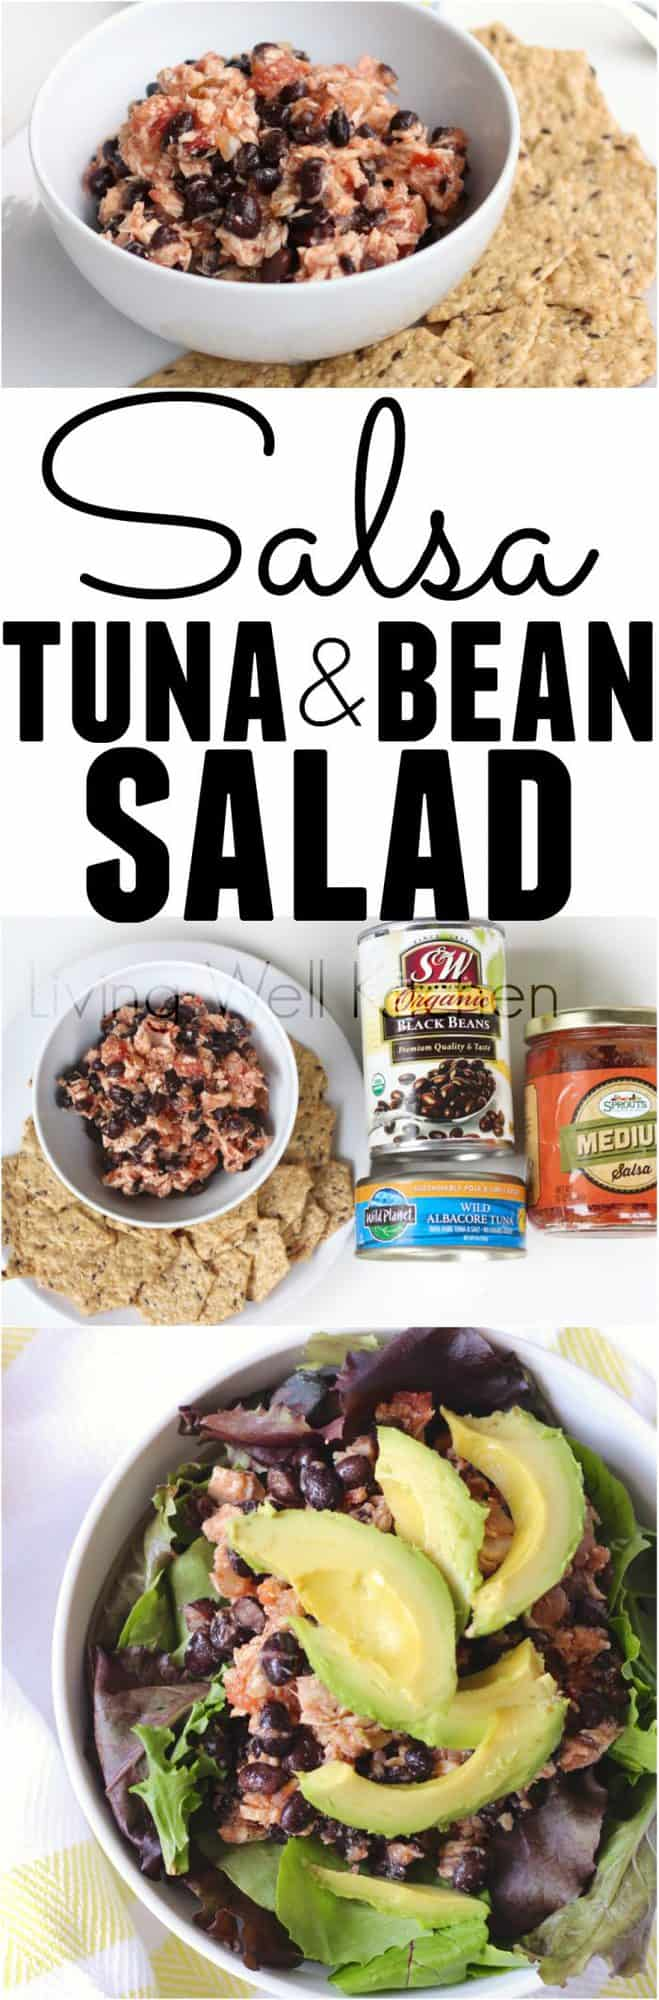 Only three ingredients and three minutes of prep time for a high protein, incredibly filling meal or snack. Pantry staples are one of the keys to making inexpensive meals in a jiffy, and this recipe for Salsa Tuna and Bean Salad uses just canned ingredients (but tastes delicious!). It is gluten free, dairy free, egg free, and soy free